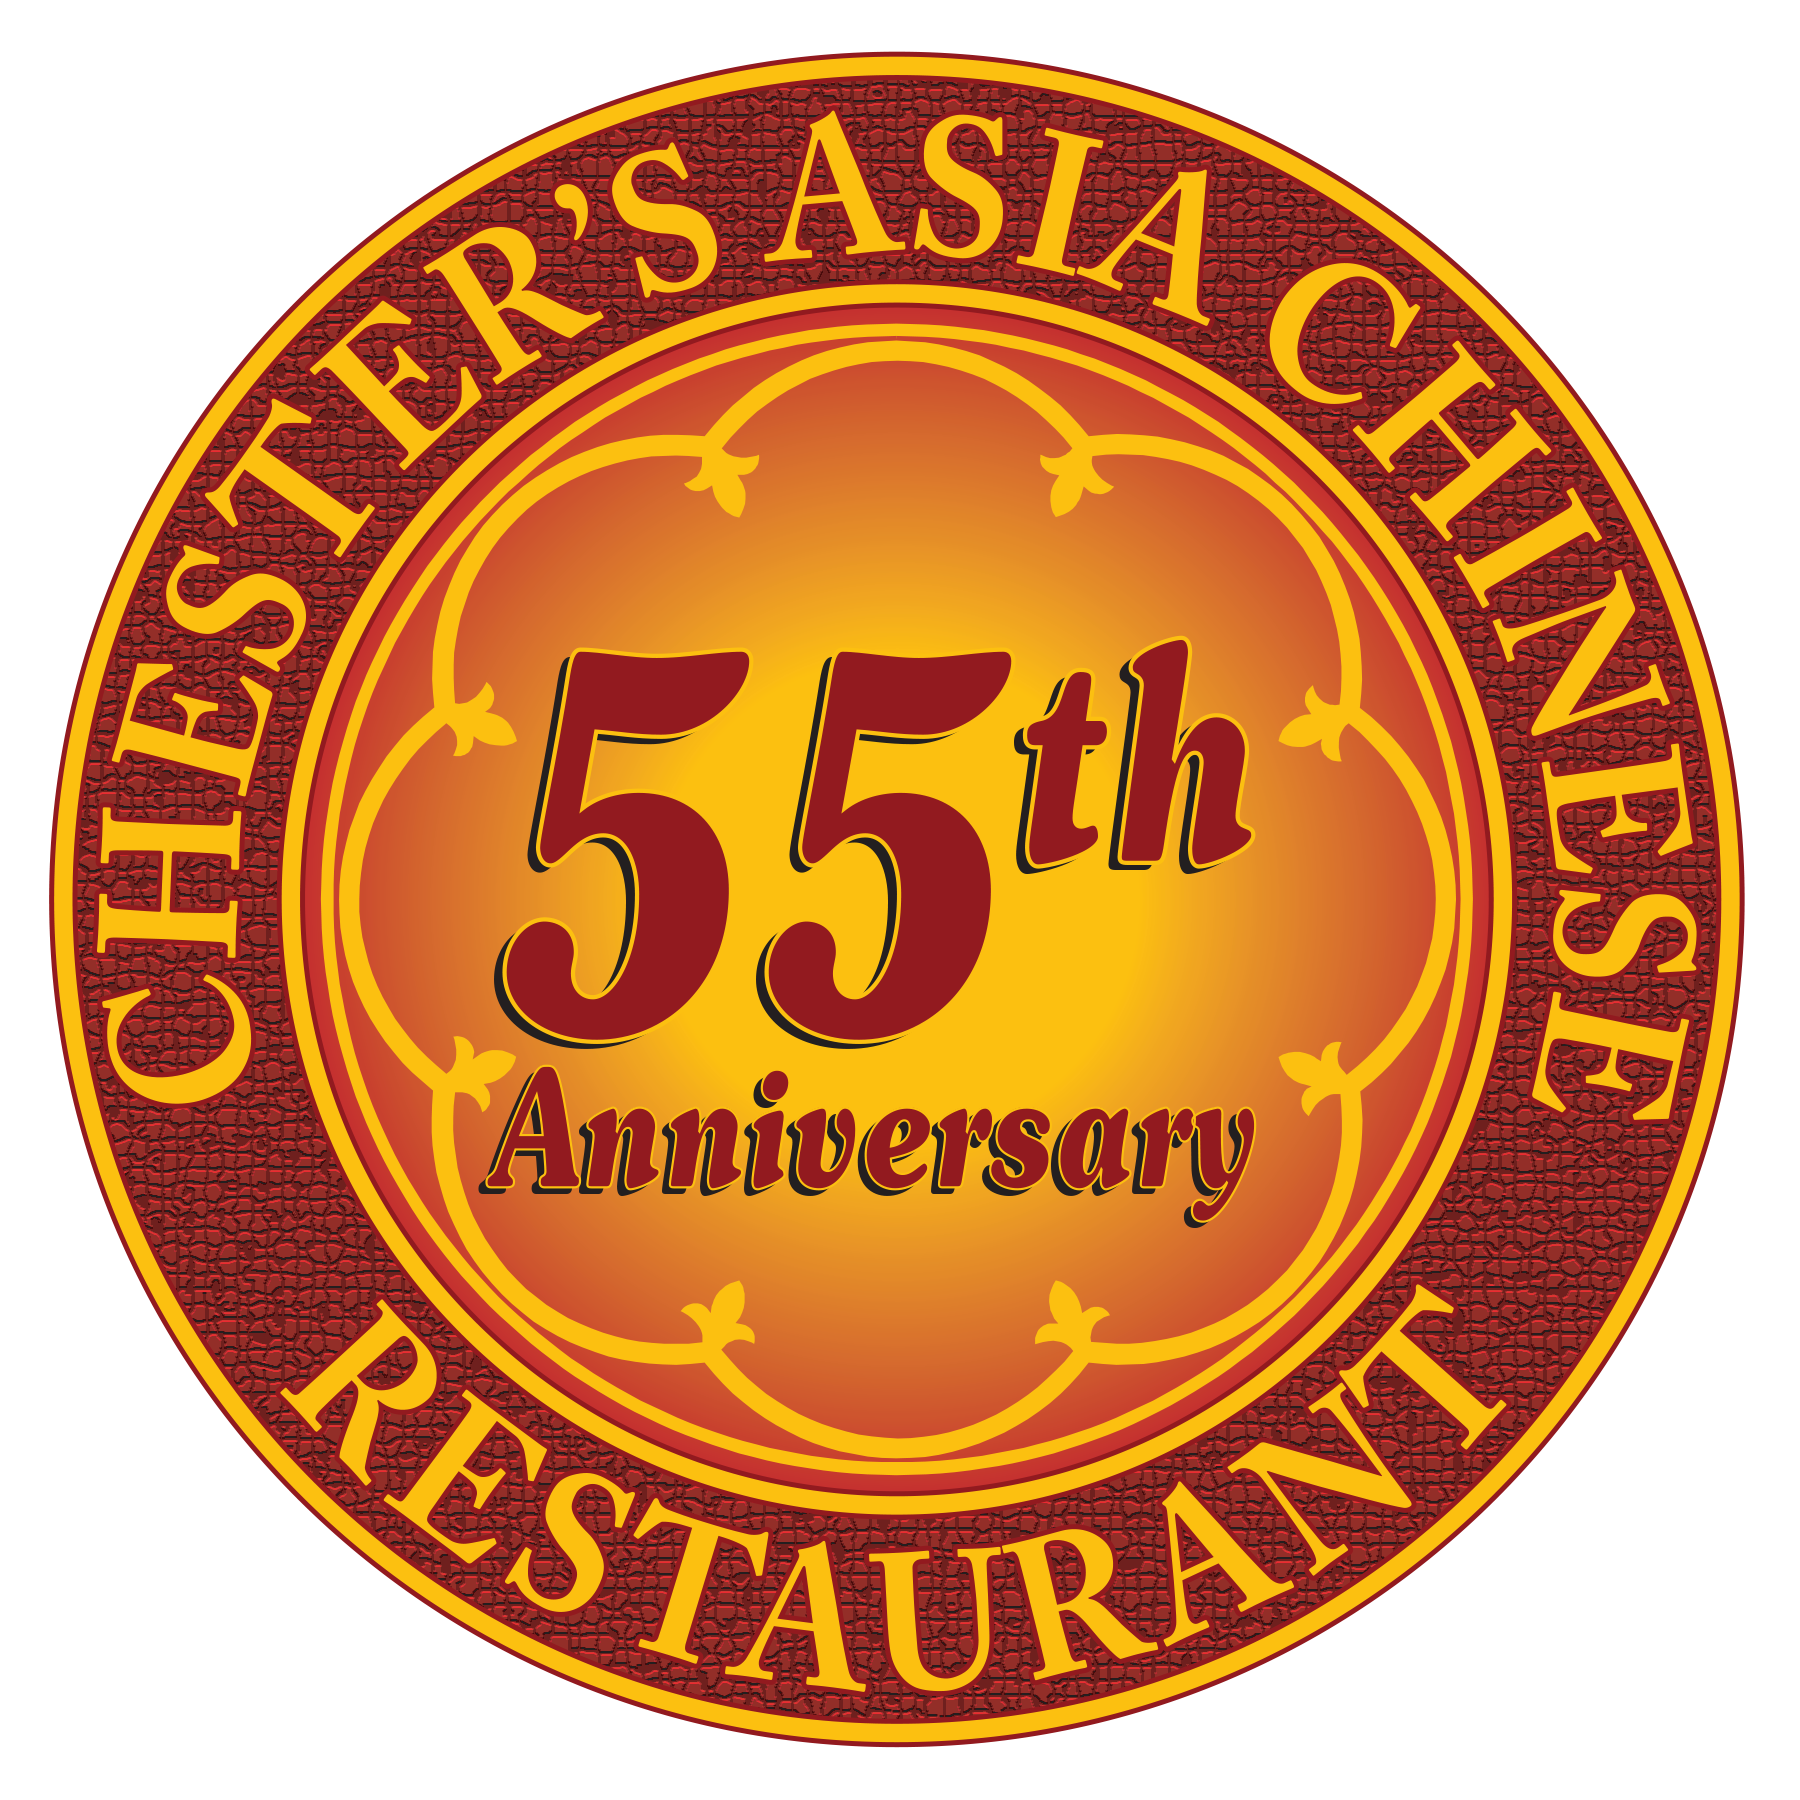 chestersrestaurant.png